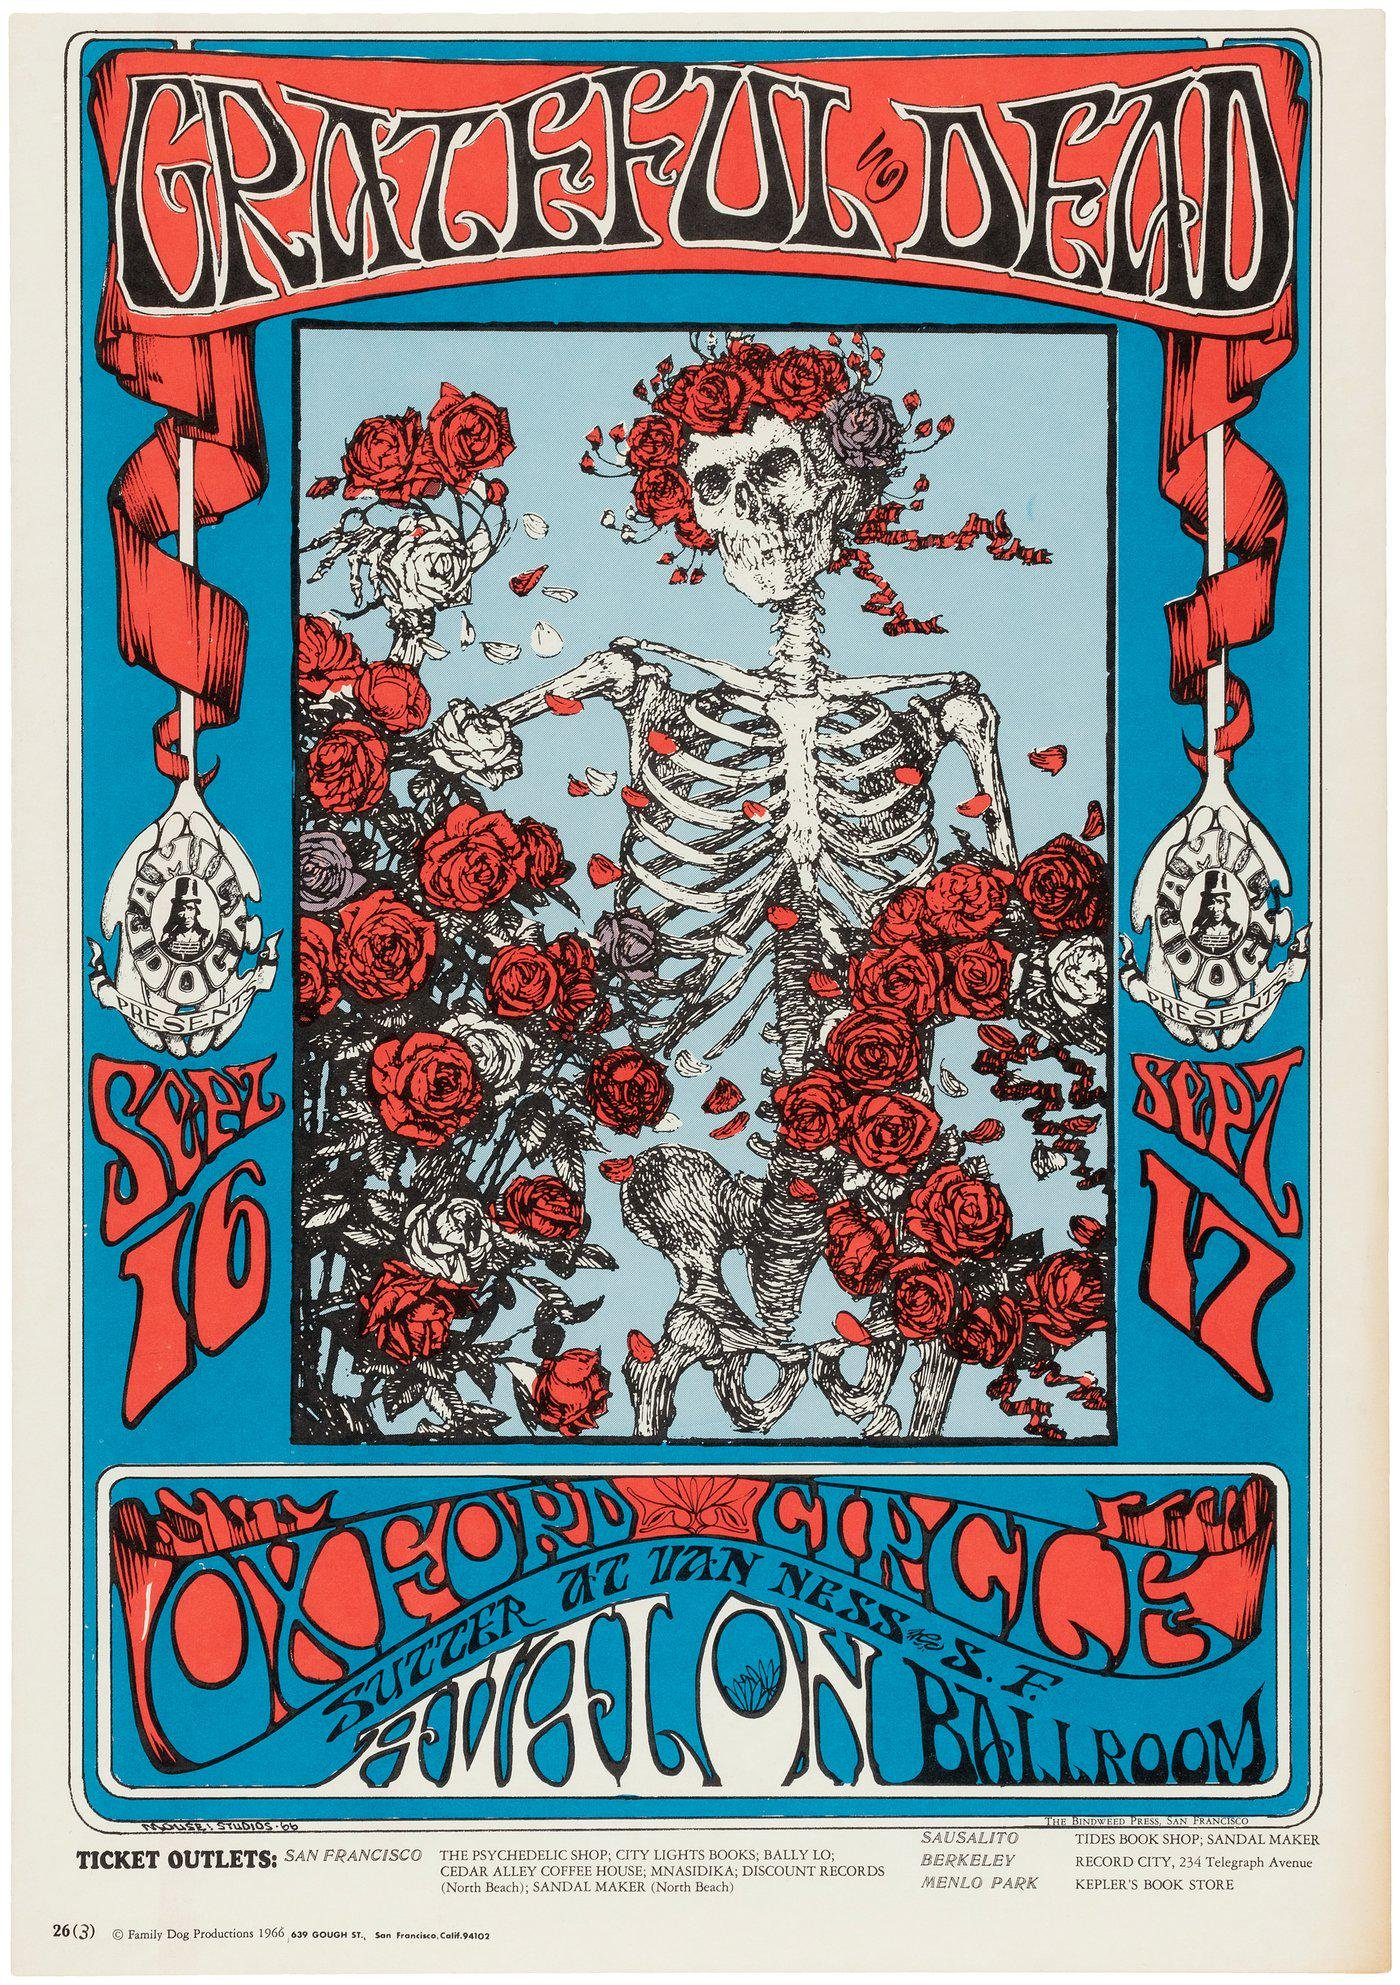 FAMILY DOG CONCERT POSTER FD-26 FEATURING THE GRATEFUL